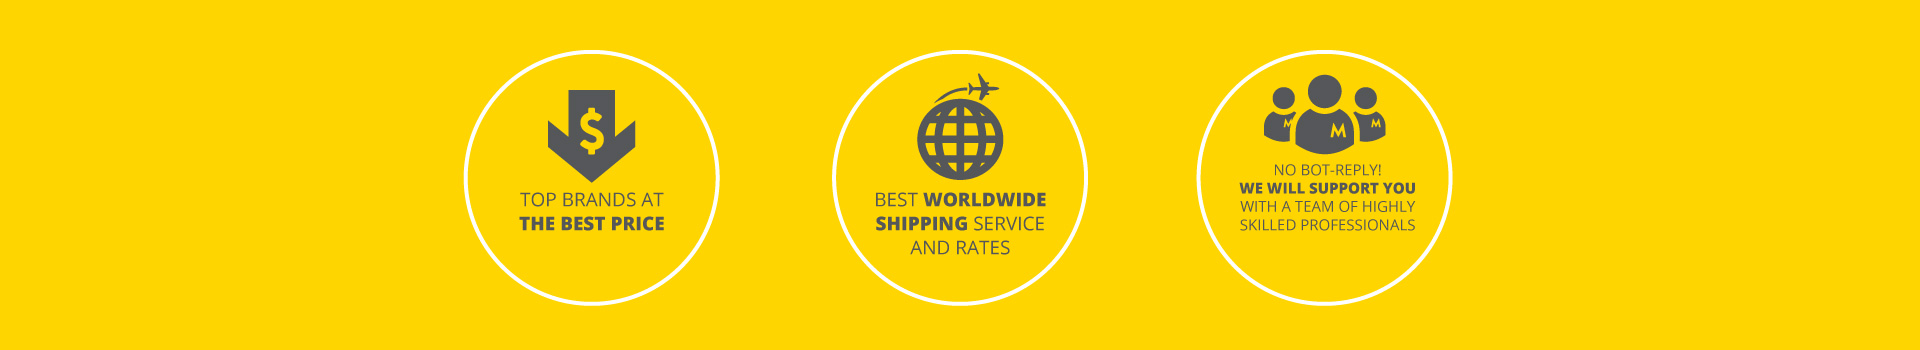 Top Brand at Best Price, Best Shipping service and rates, 24h customer support team available